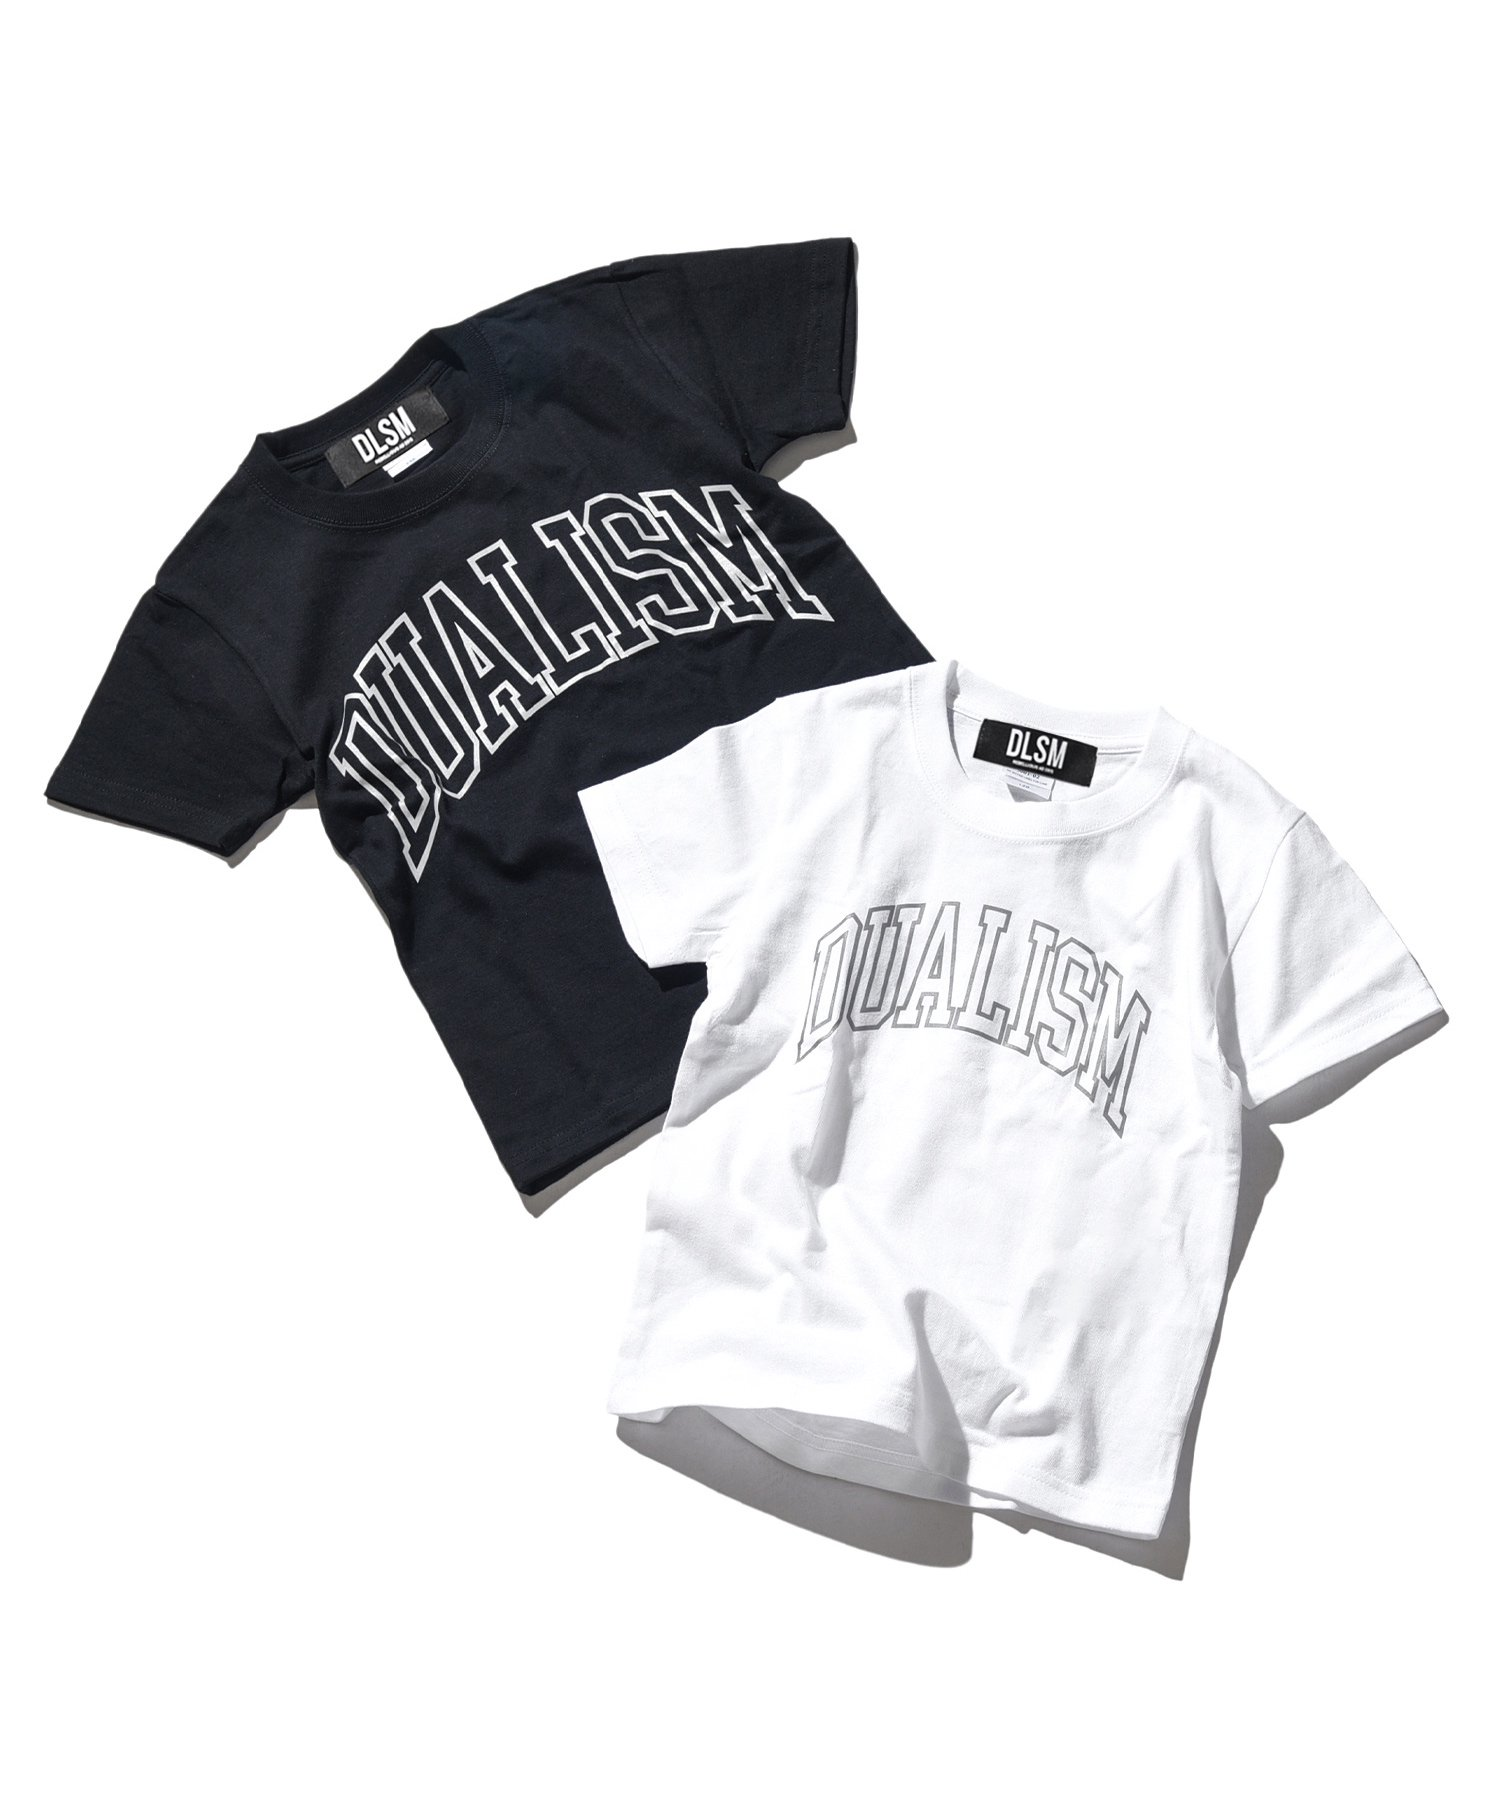 《KIDS SIZE》DUALISM OUTLINE ARCH LOGO TEE